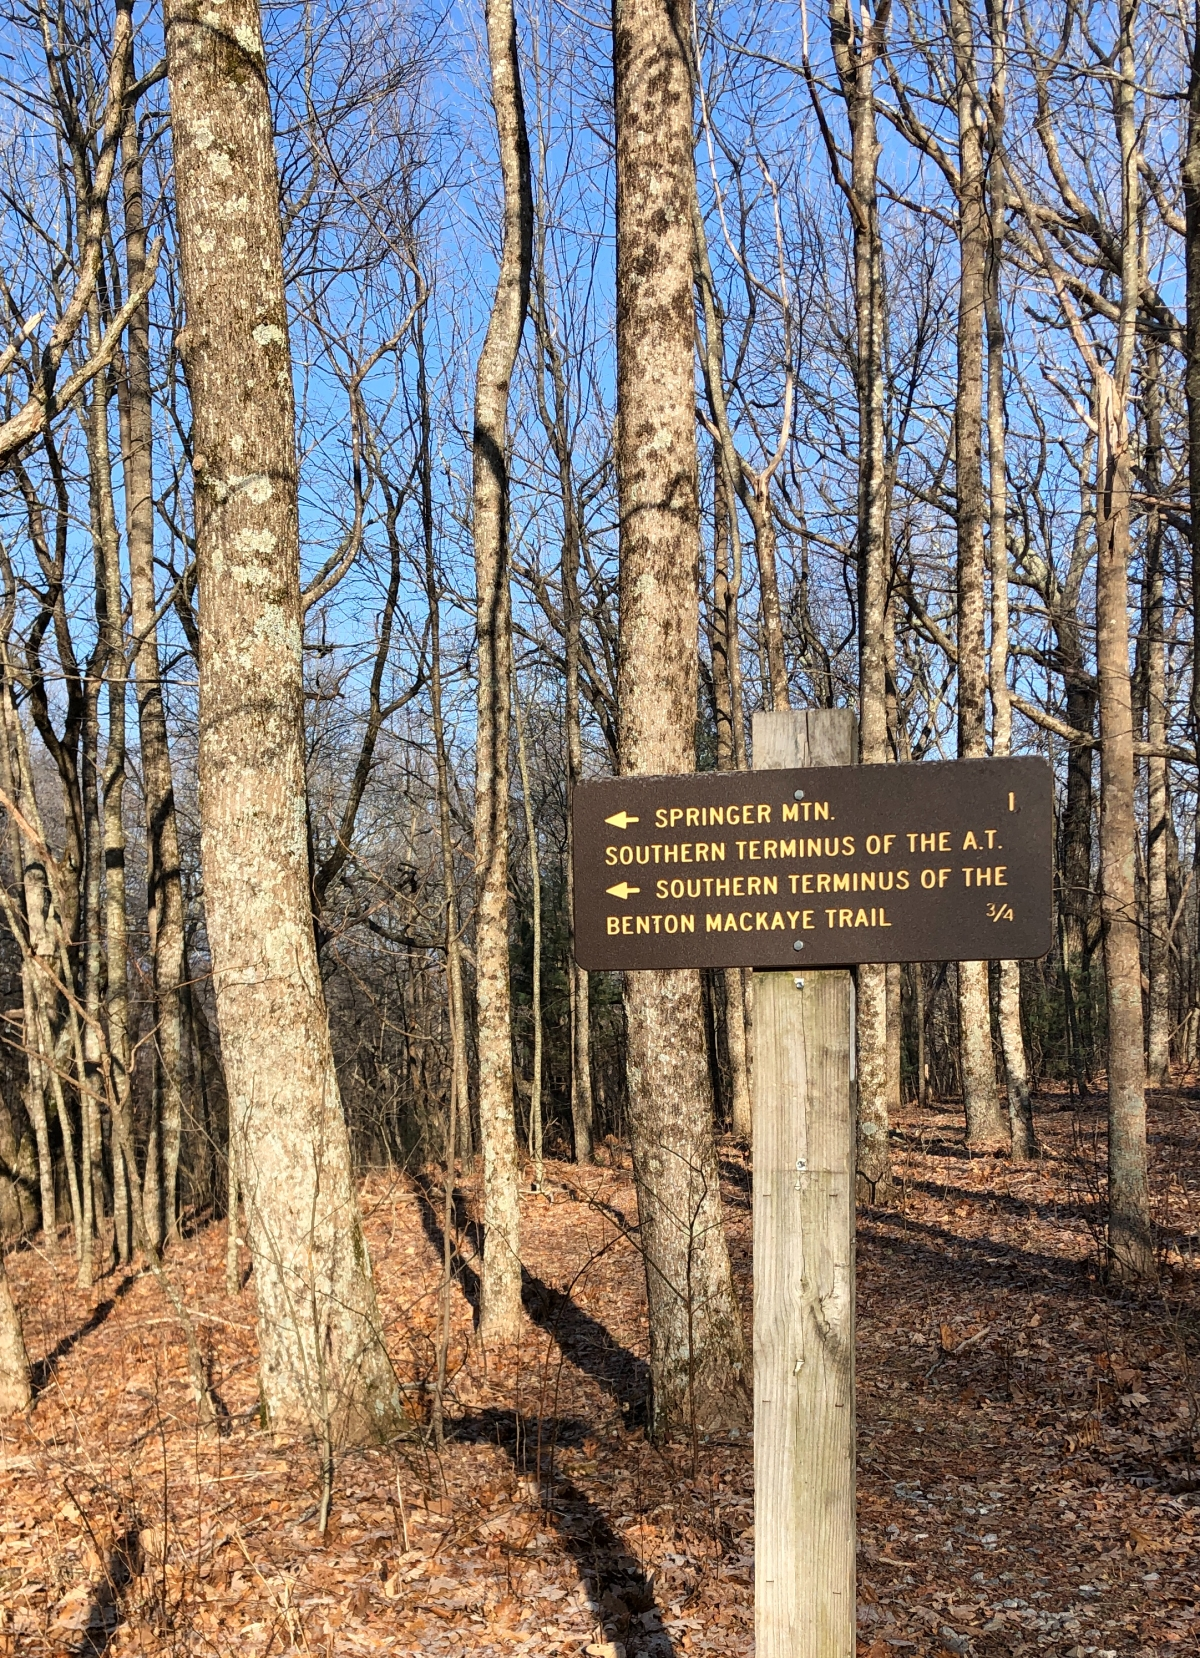 The AT trail marker